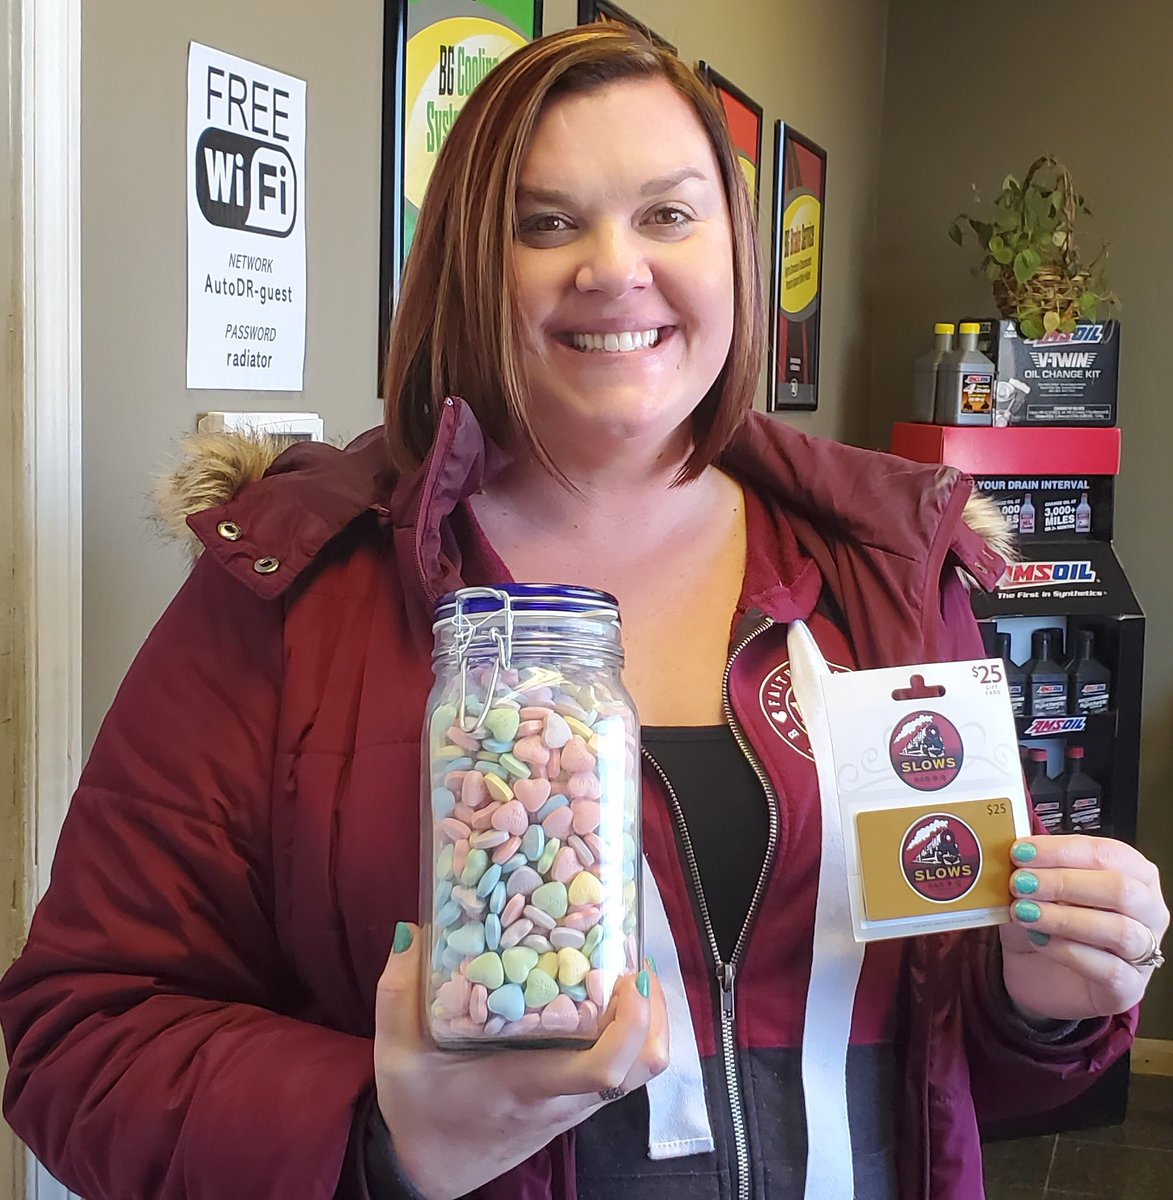 Congratulations to Colleen M. for winning our Valentine's Day contest. She received the jar with 838 candy hearts along with a gift card to Slows BBQ! #AutoDR #AutoDRjr #ValentinesDayContest